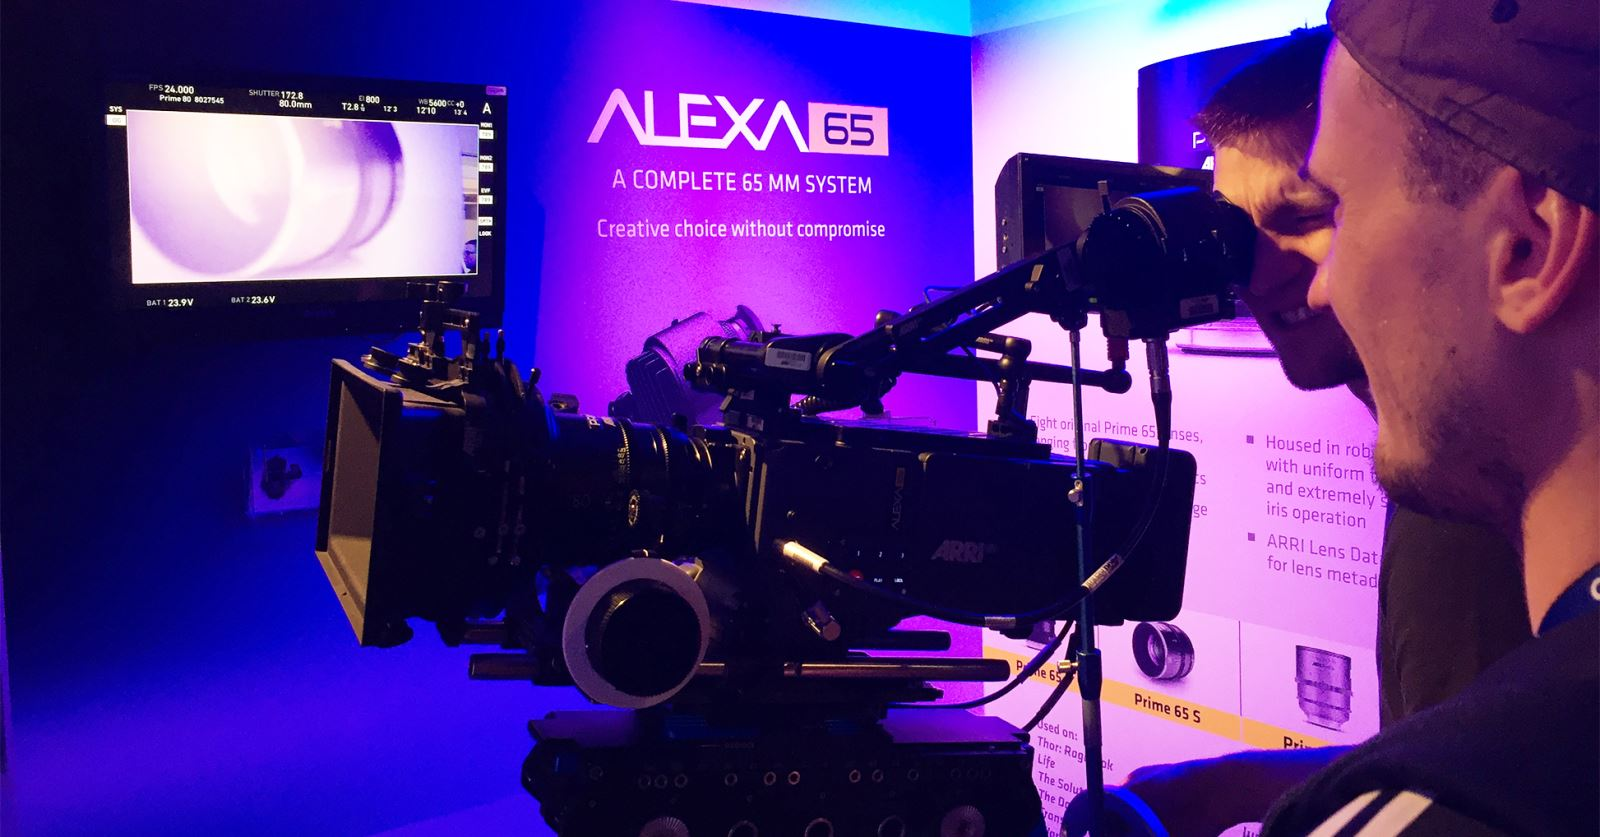 The ALEXA 65 system on the ARRI stand at Camerimage in Bydgoszcz, Poland